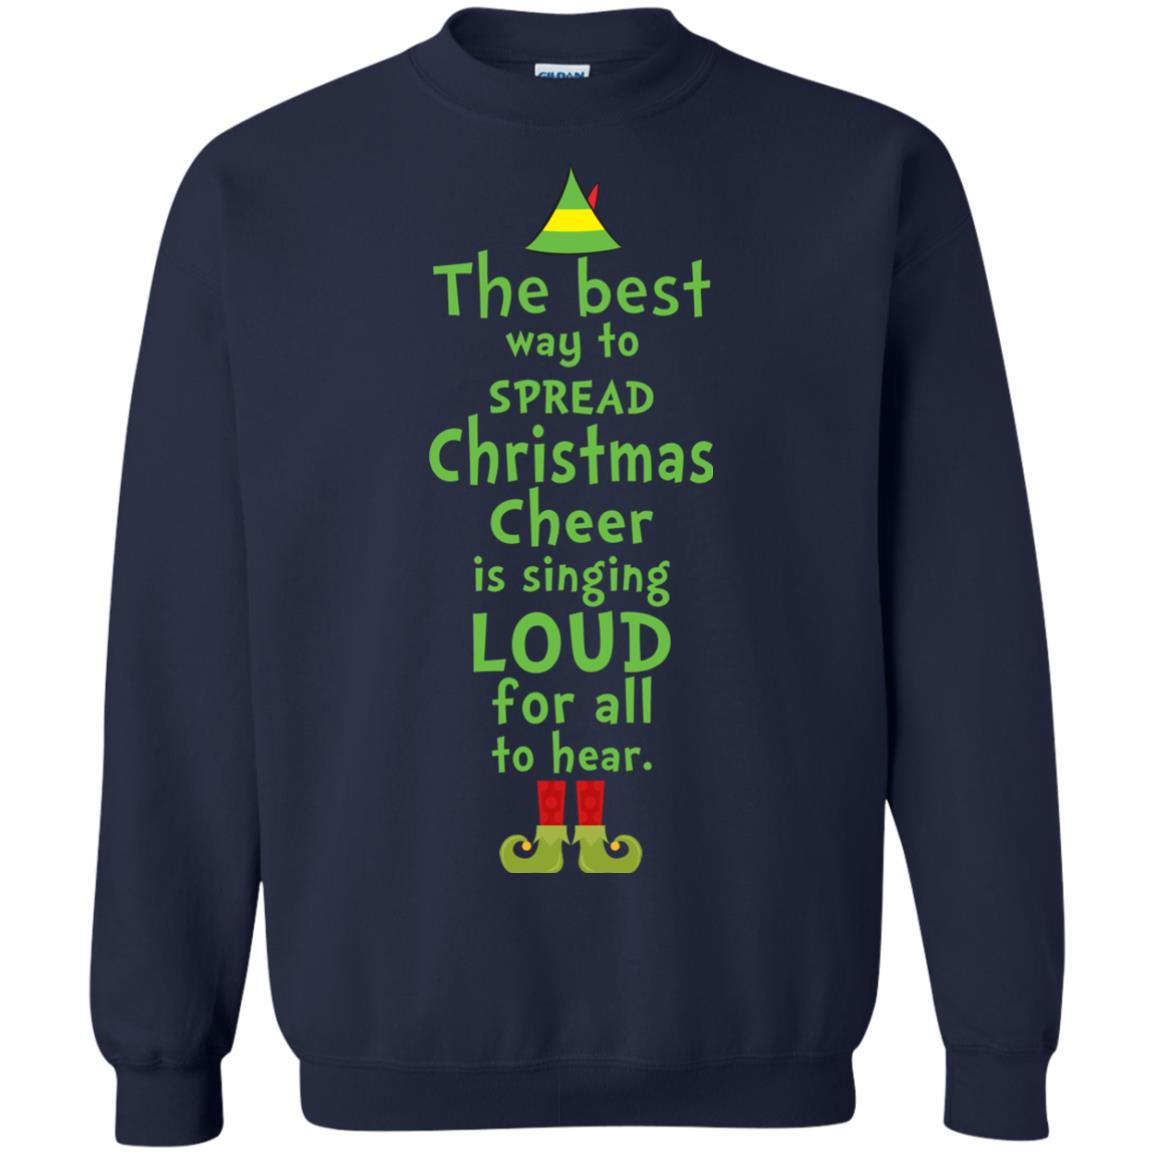 image 2462 - The best way to spread Christmas cheer is singing loud for all to hear Sweater, Shirt